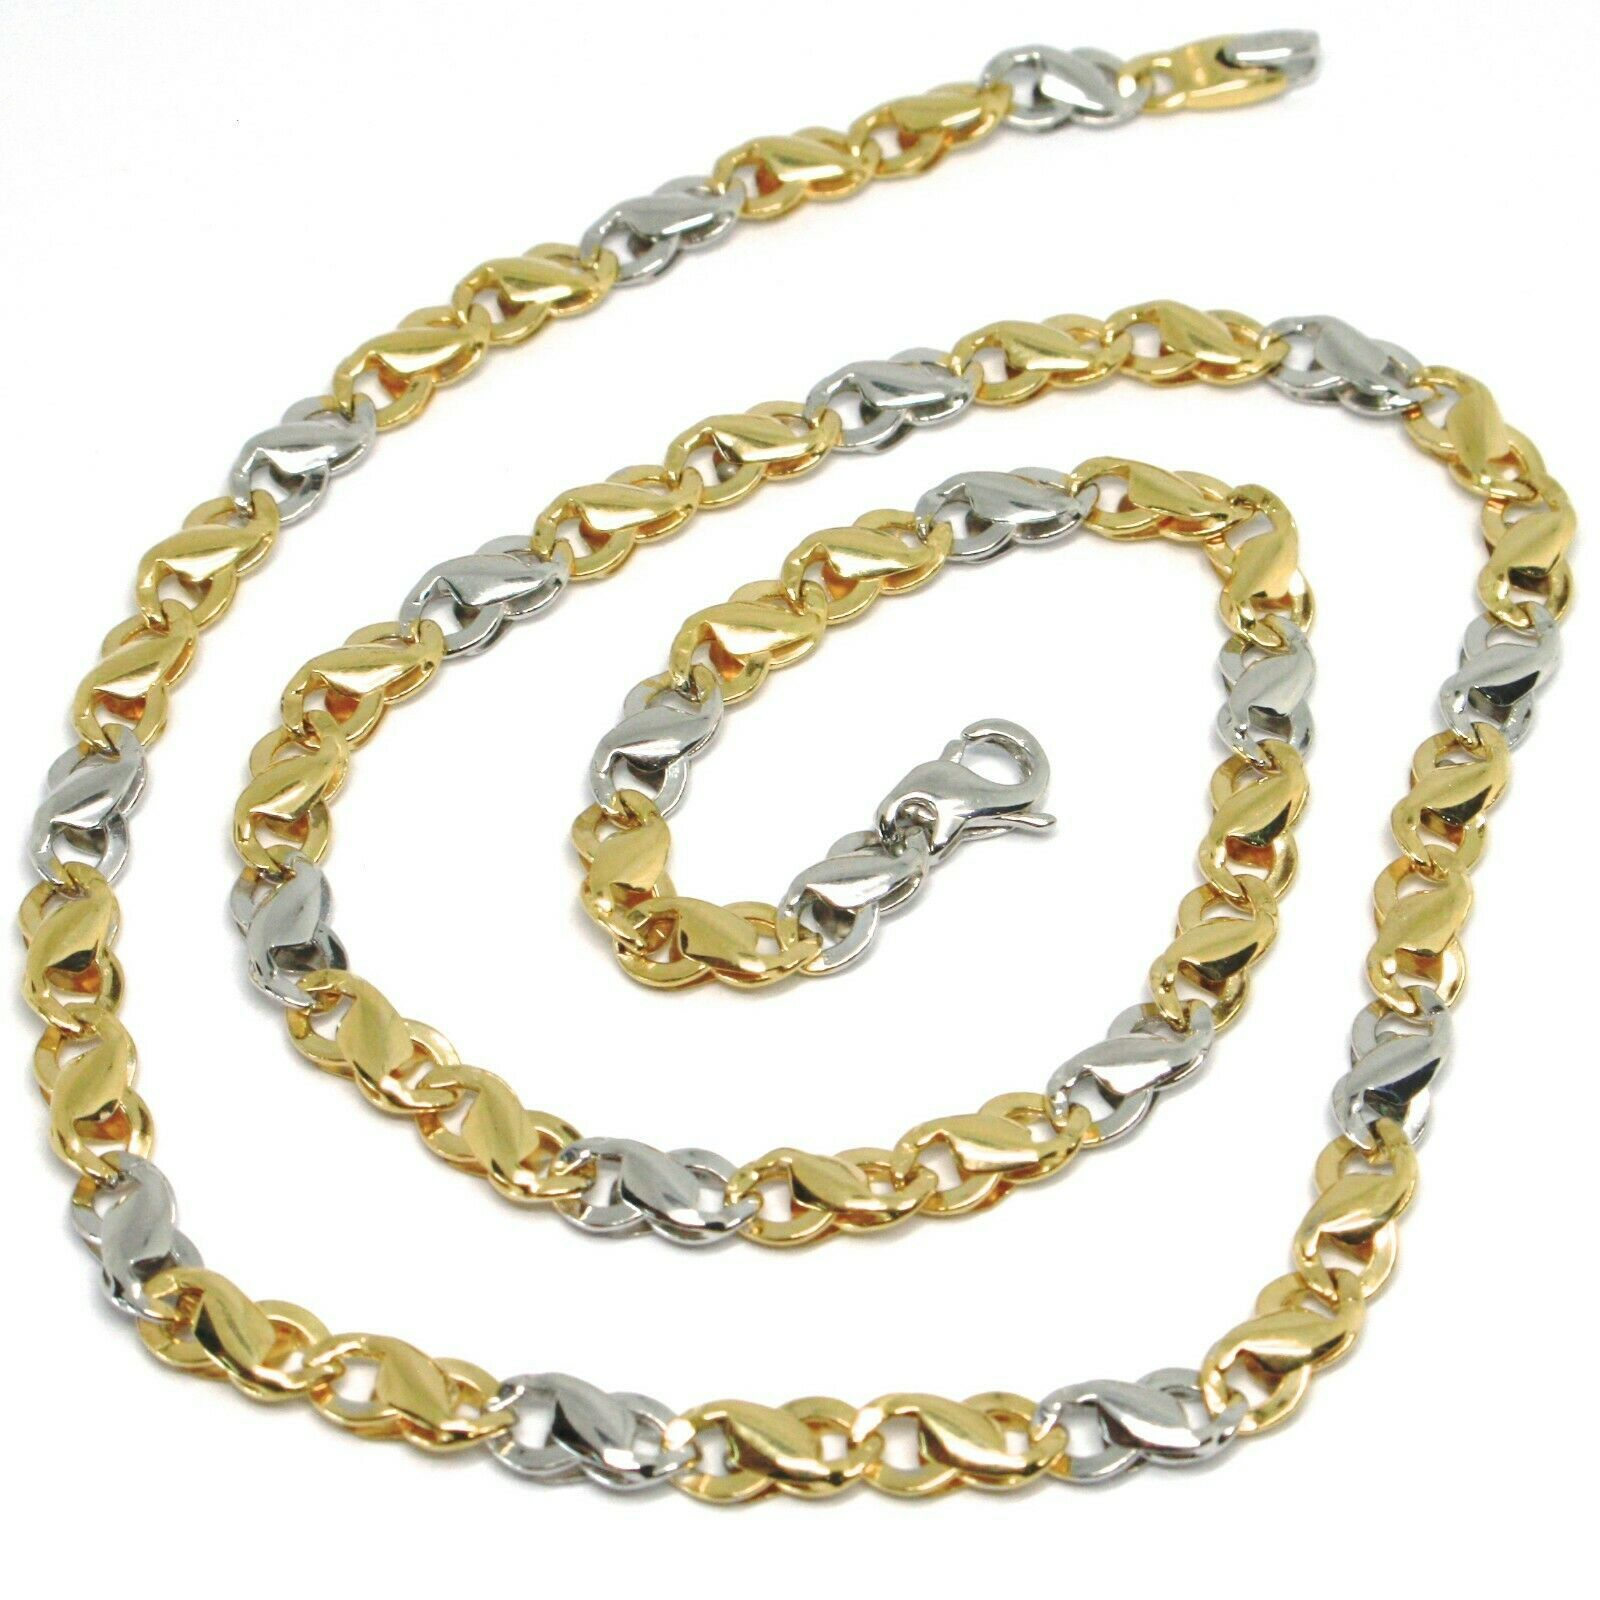 18K YELLOW WHITE GOLD CHAIN, INFINITE ROUNDED LINK, 20 INCHES, ITALY MADE